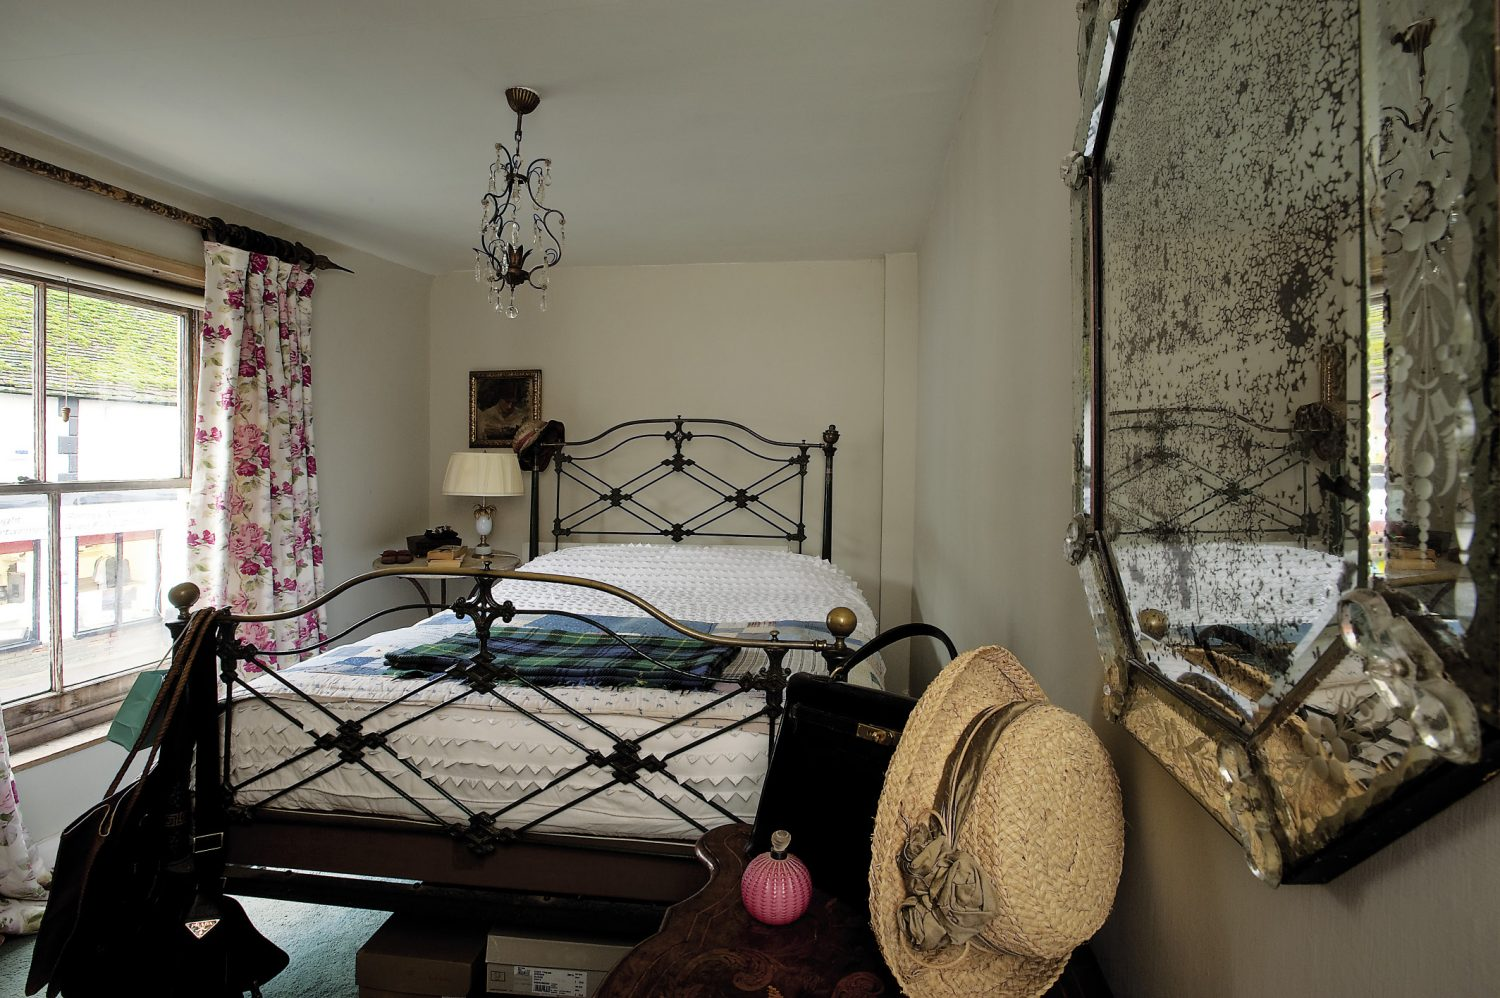 """On closer inspection, the iron bedstead in the master bedroom, with its delicate lattice pattern, is not the usual Victorian black but is actually painted verdigris green with a garnet red Greek key pattern traced around the posts. """"Most iron beds have been smothered in black paint,"""" explains Brad, """"but originally, iron beds were painted in a variety of colours and featured little patterns or designs."""""""